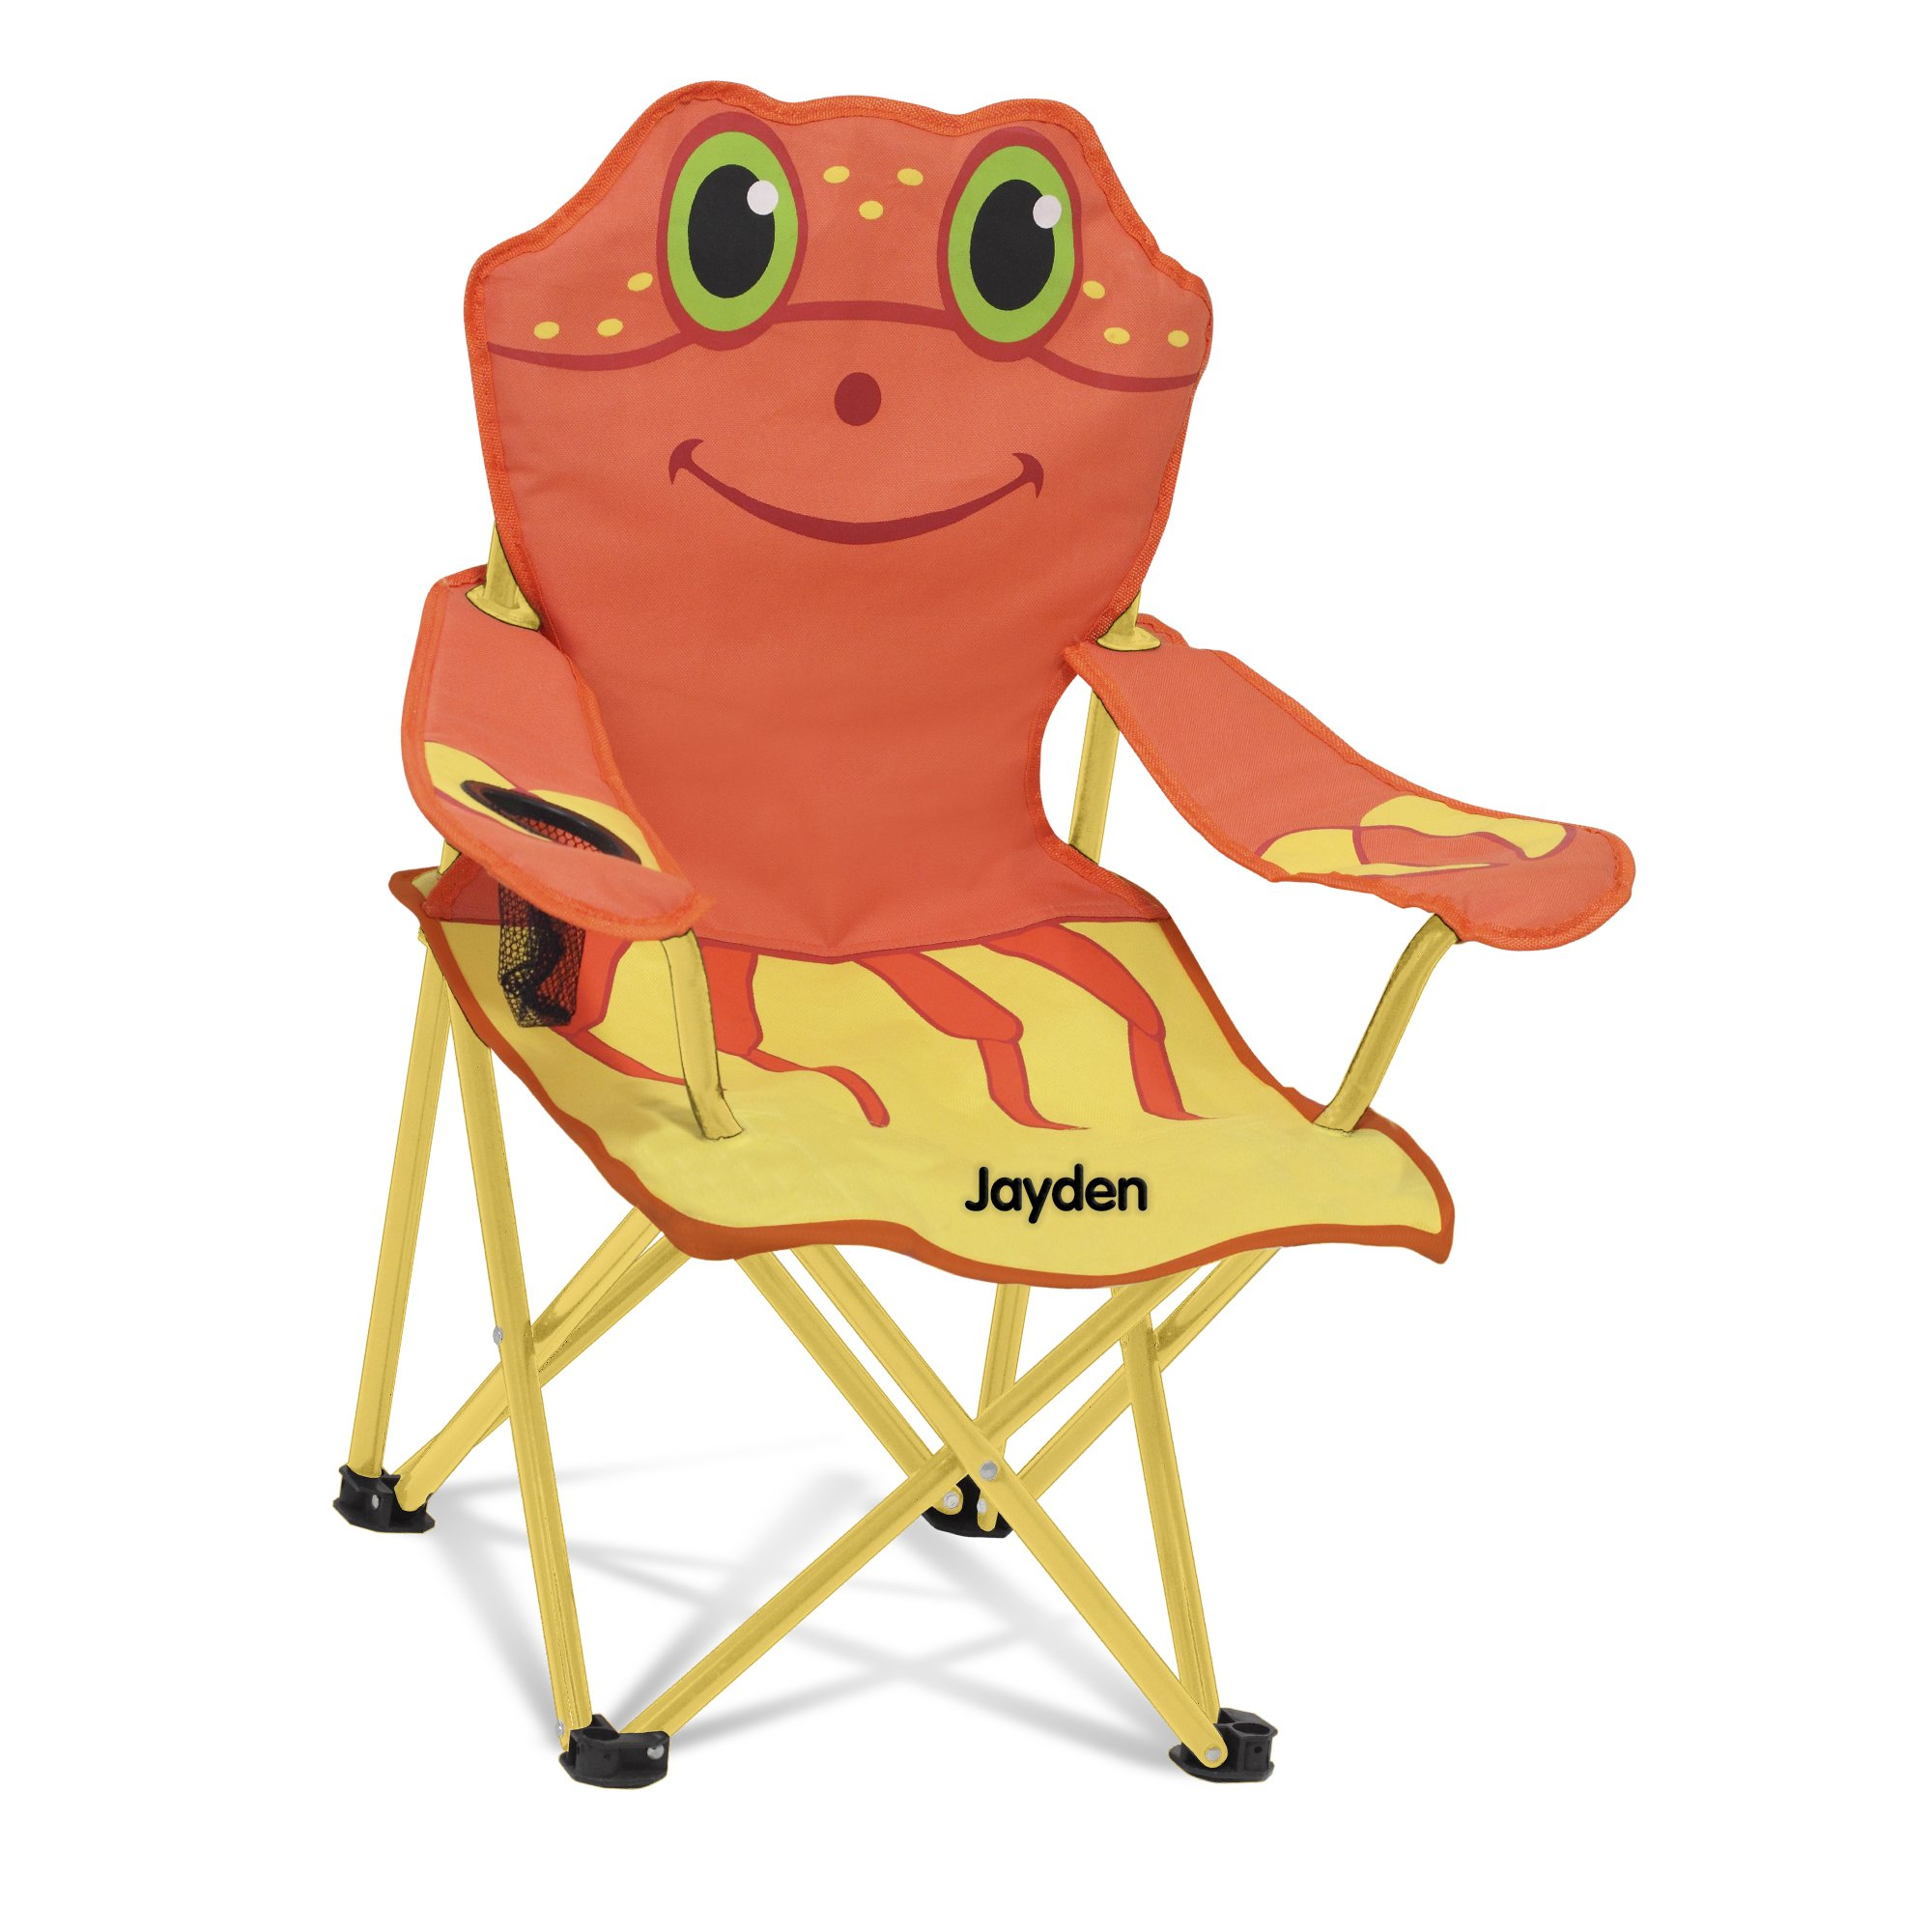 Melissa & Doug Personalized Sunny Patch Clicker Crab Folding Beach Chair For Kids Outdoor